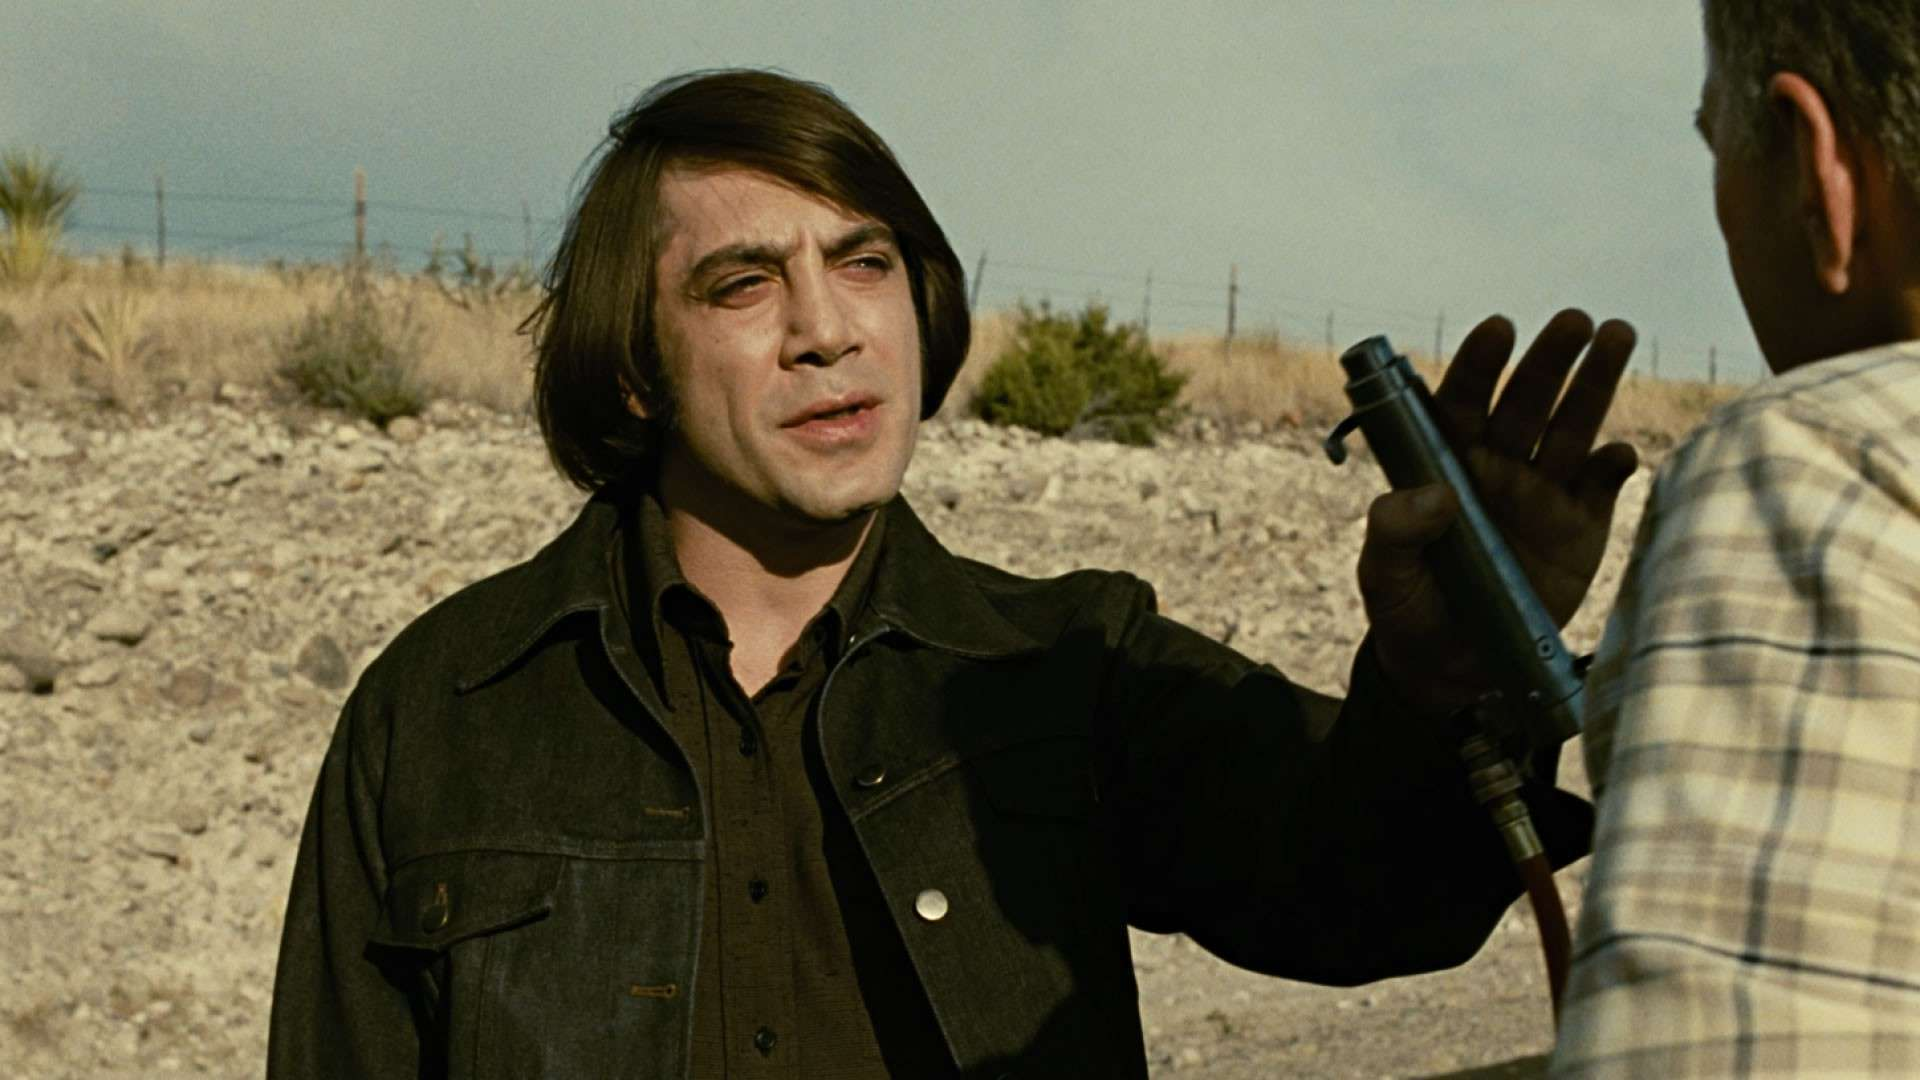 reasons why ldquo no country for old men rdquo is a nihilistic 10 reasons why ldquono country for old menrdquo is a nihilistic masterpiece of american cinema acirc taste of cinema movie reviews and classic movie lists